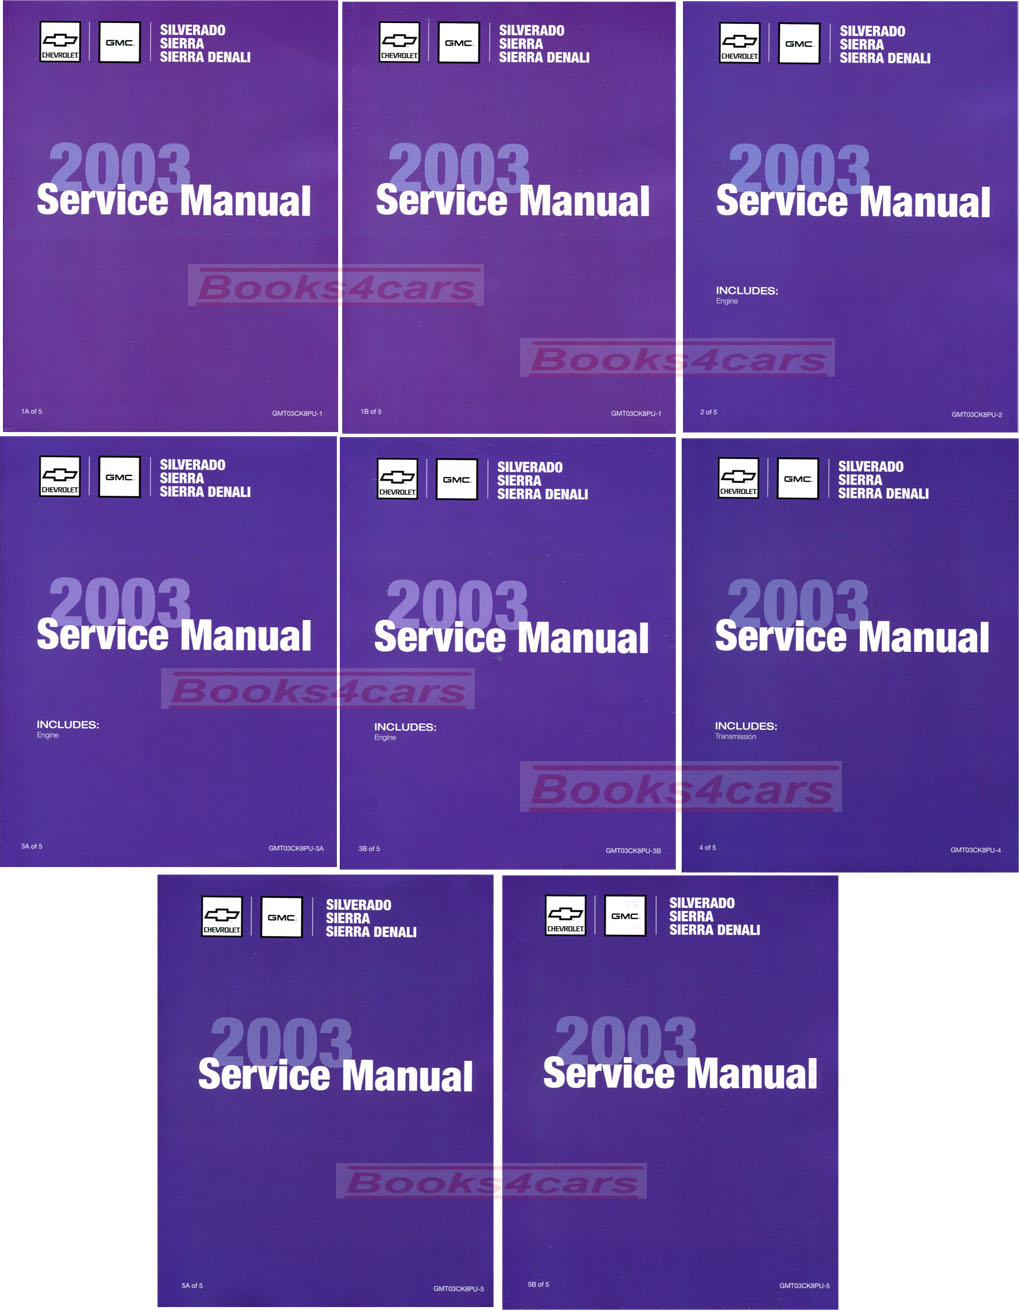 hight resolution of 2003 silverado sierra denali shop service repair manual by chevrolet gmc truck includes hd and diesel duramax engine b03 gmt03ck8pu